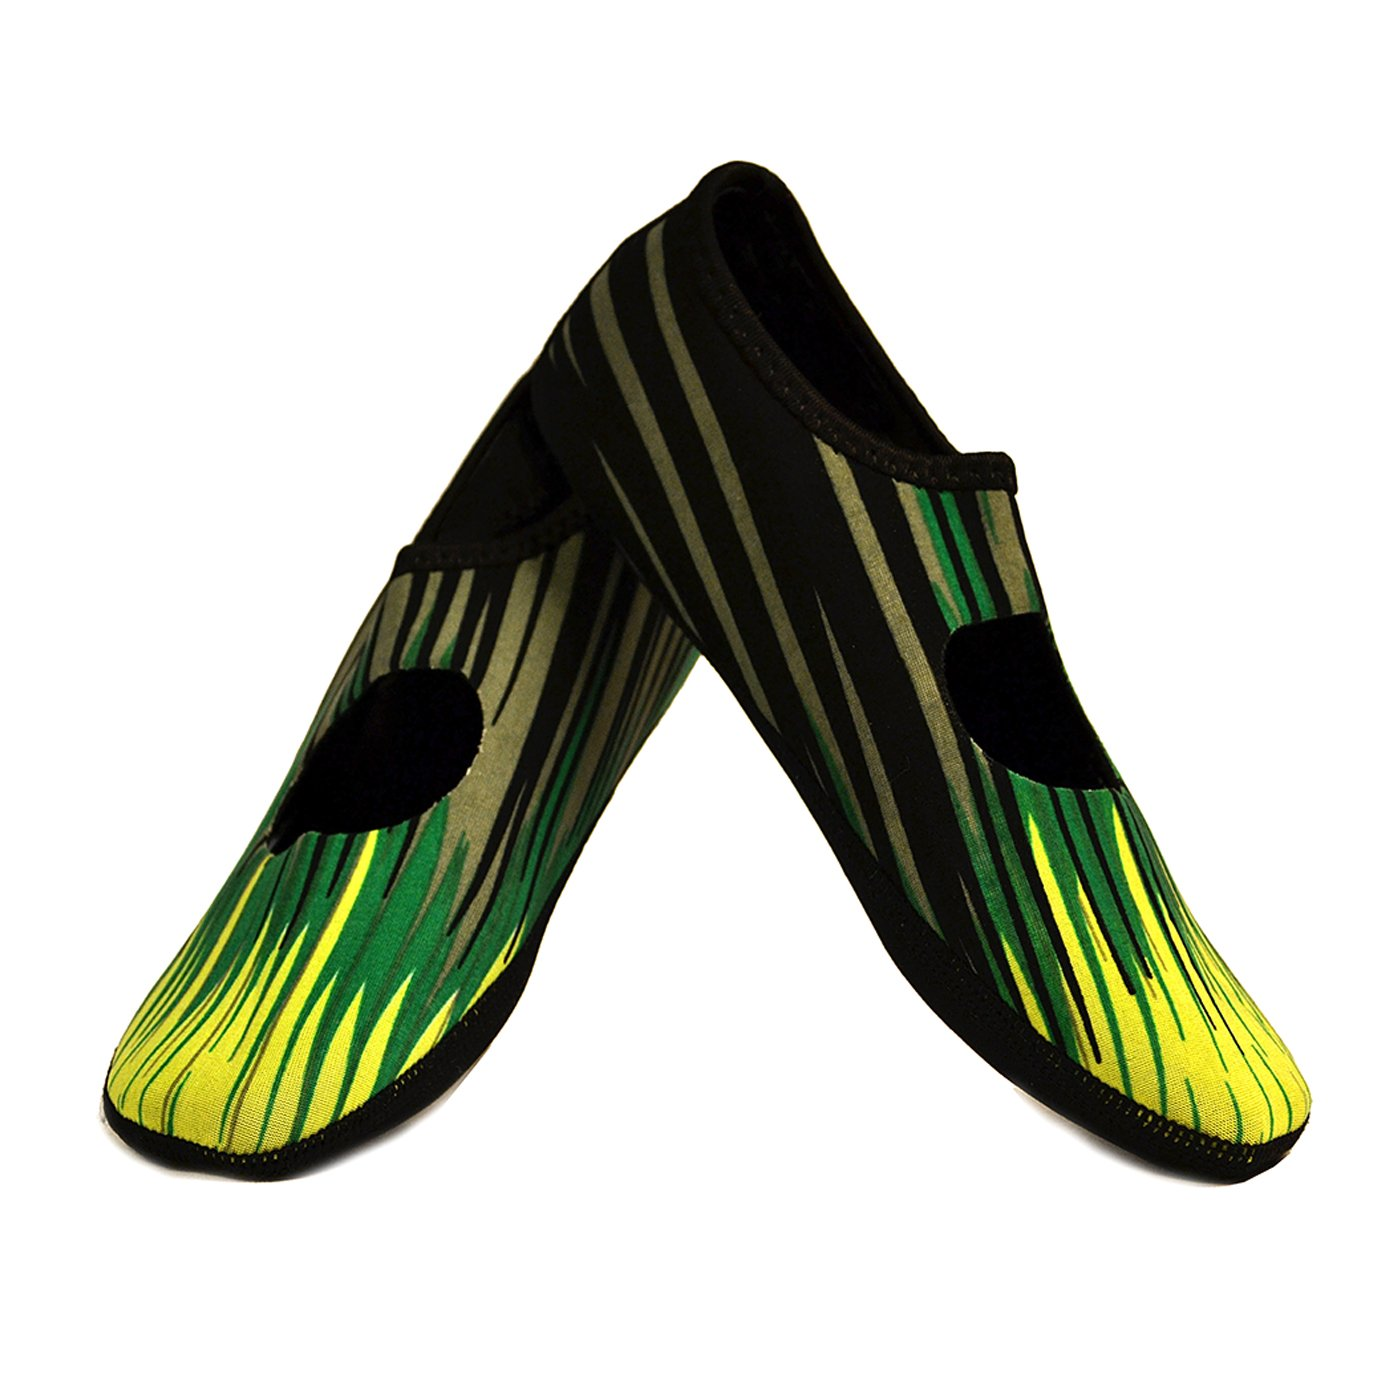 NuFoot Mary Janes Women's Shoes, Best Foldable & Flexible Flats, Slipper Socks, Travel Slippers & Exercise Shoes, Dance Shoes, Yoga Socks, House Shoes, Indoor Slippers, Green Aurora, Extra Large